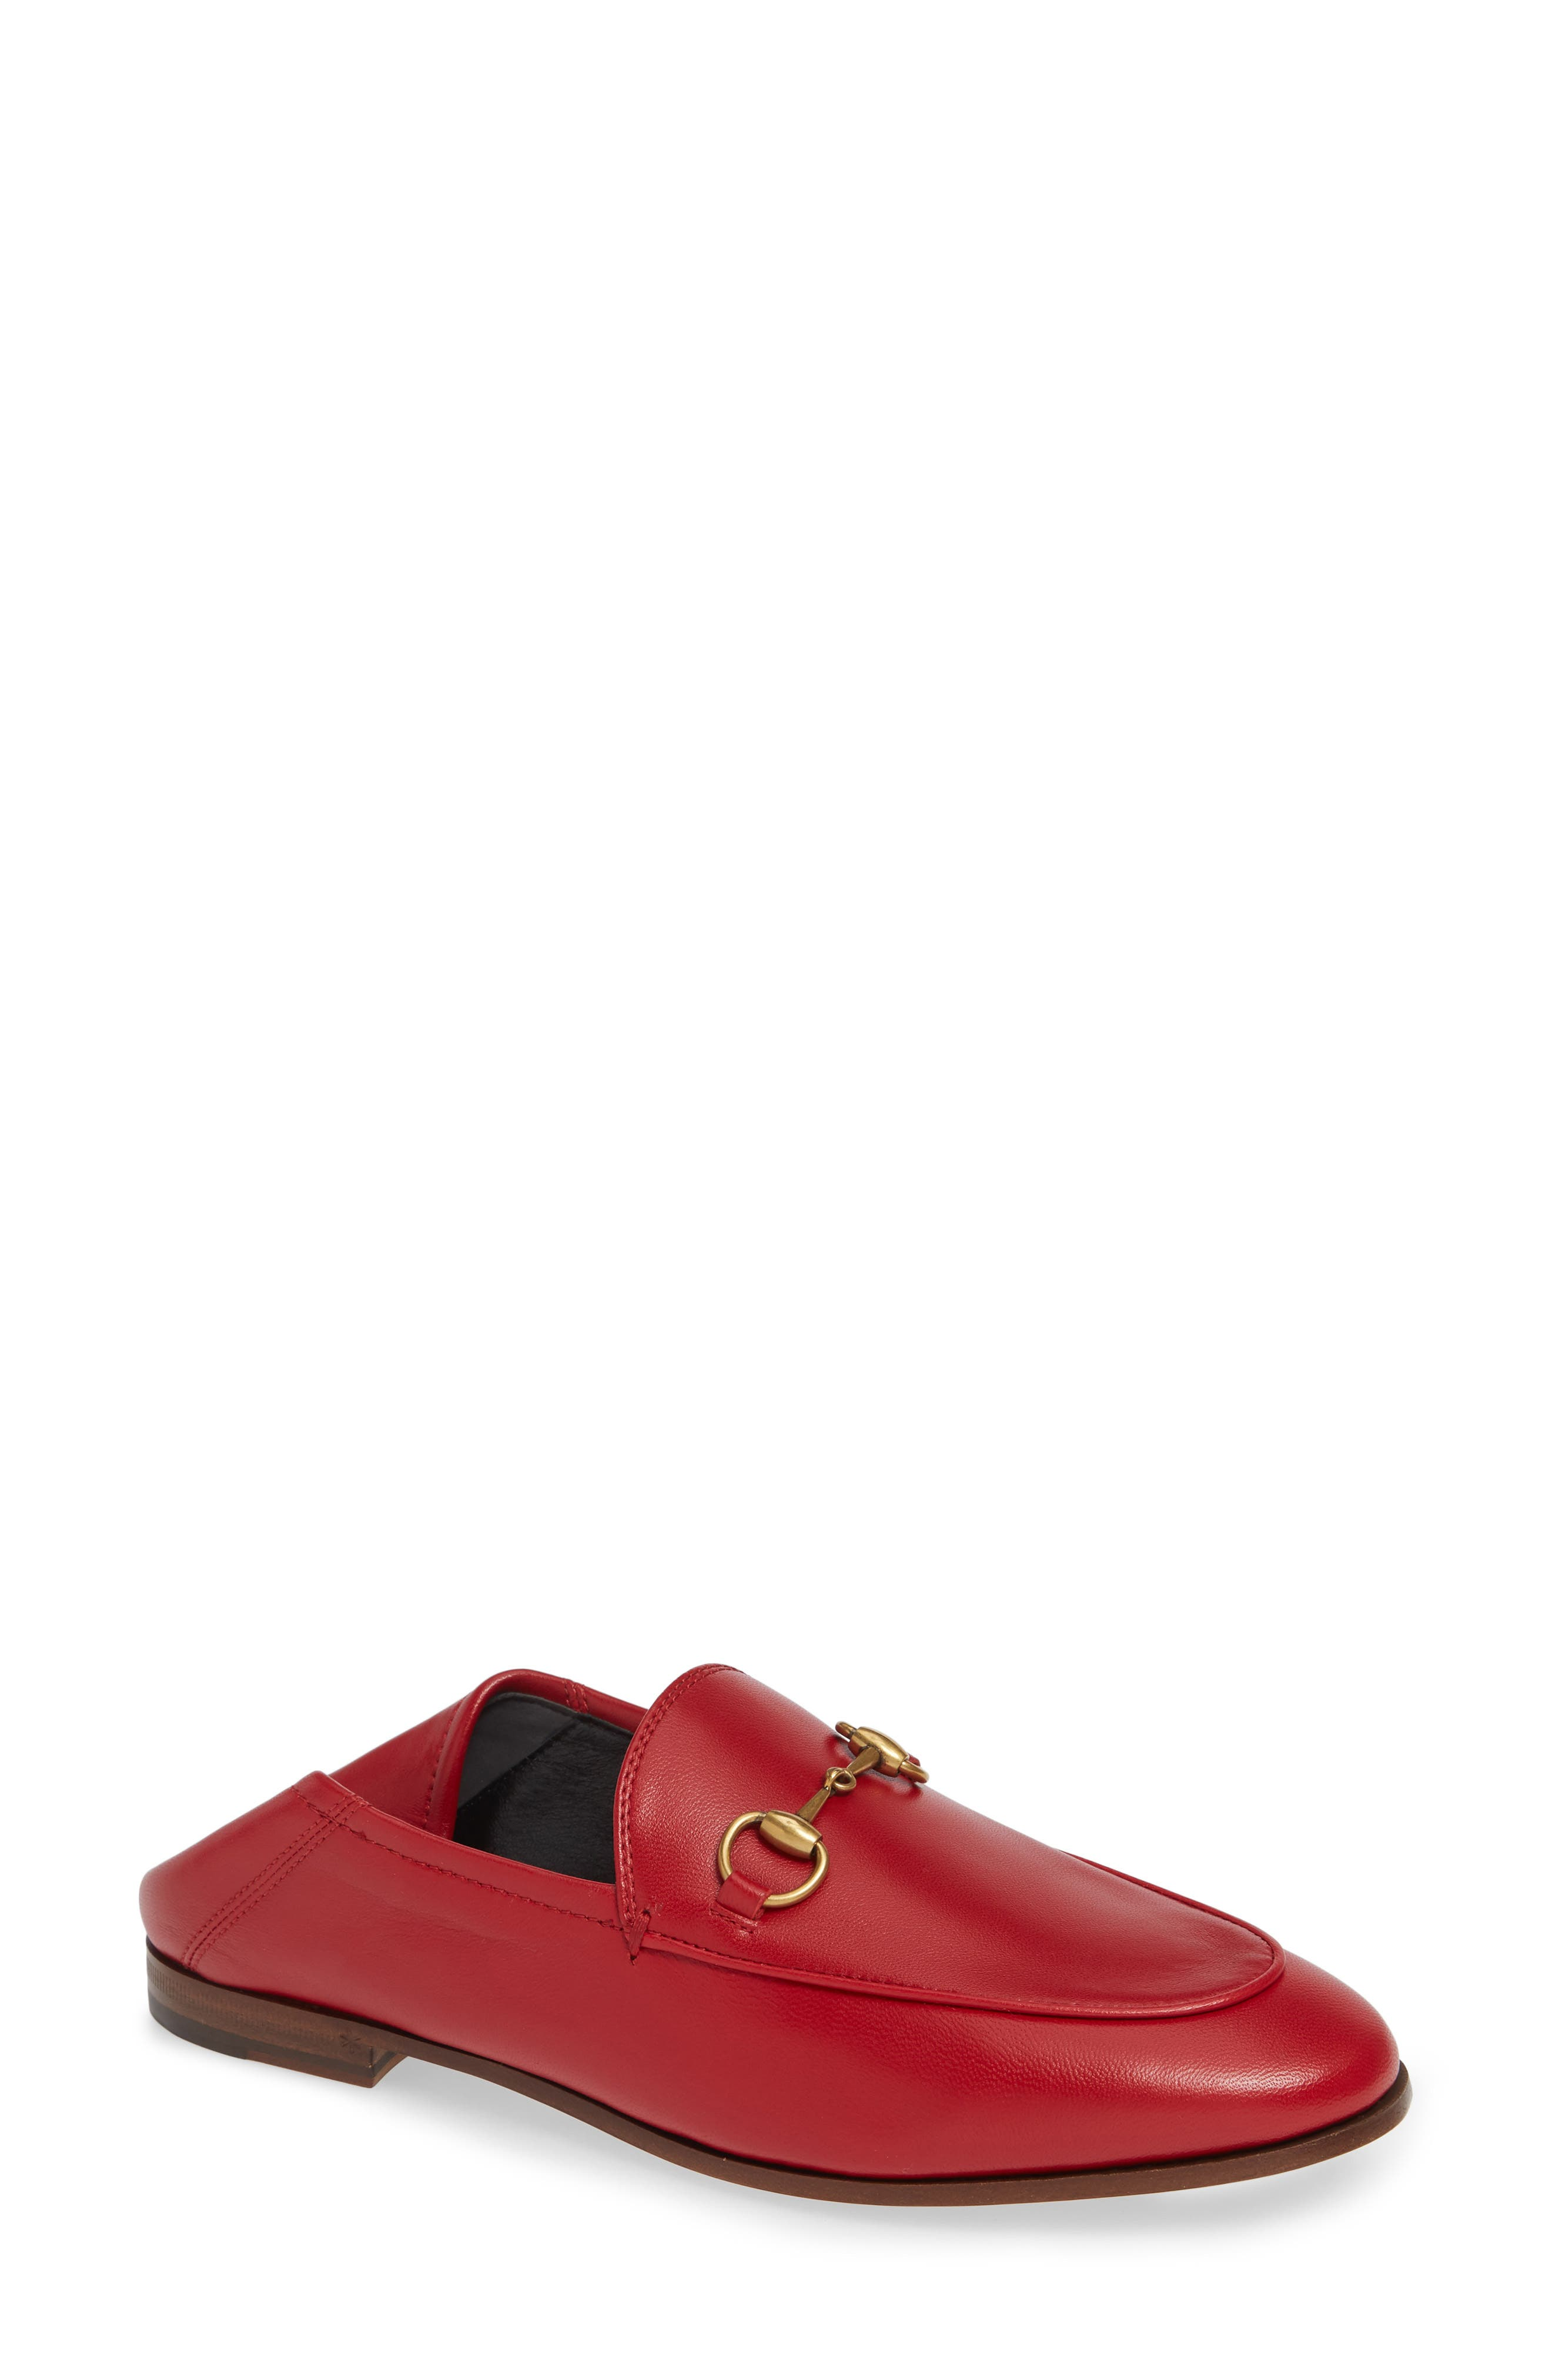 Gucci Brixton Convertible Loafer, Red